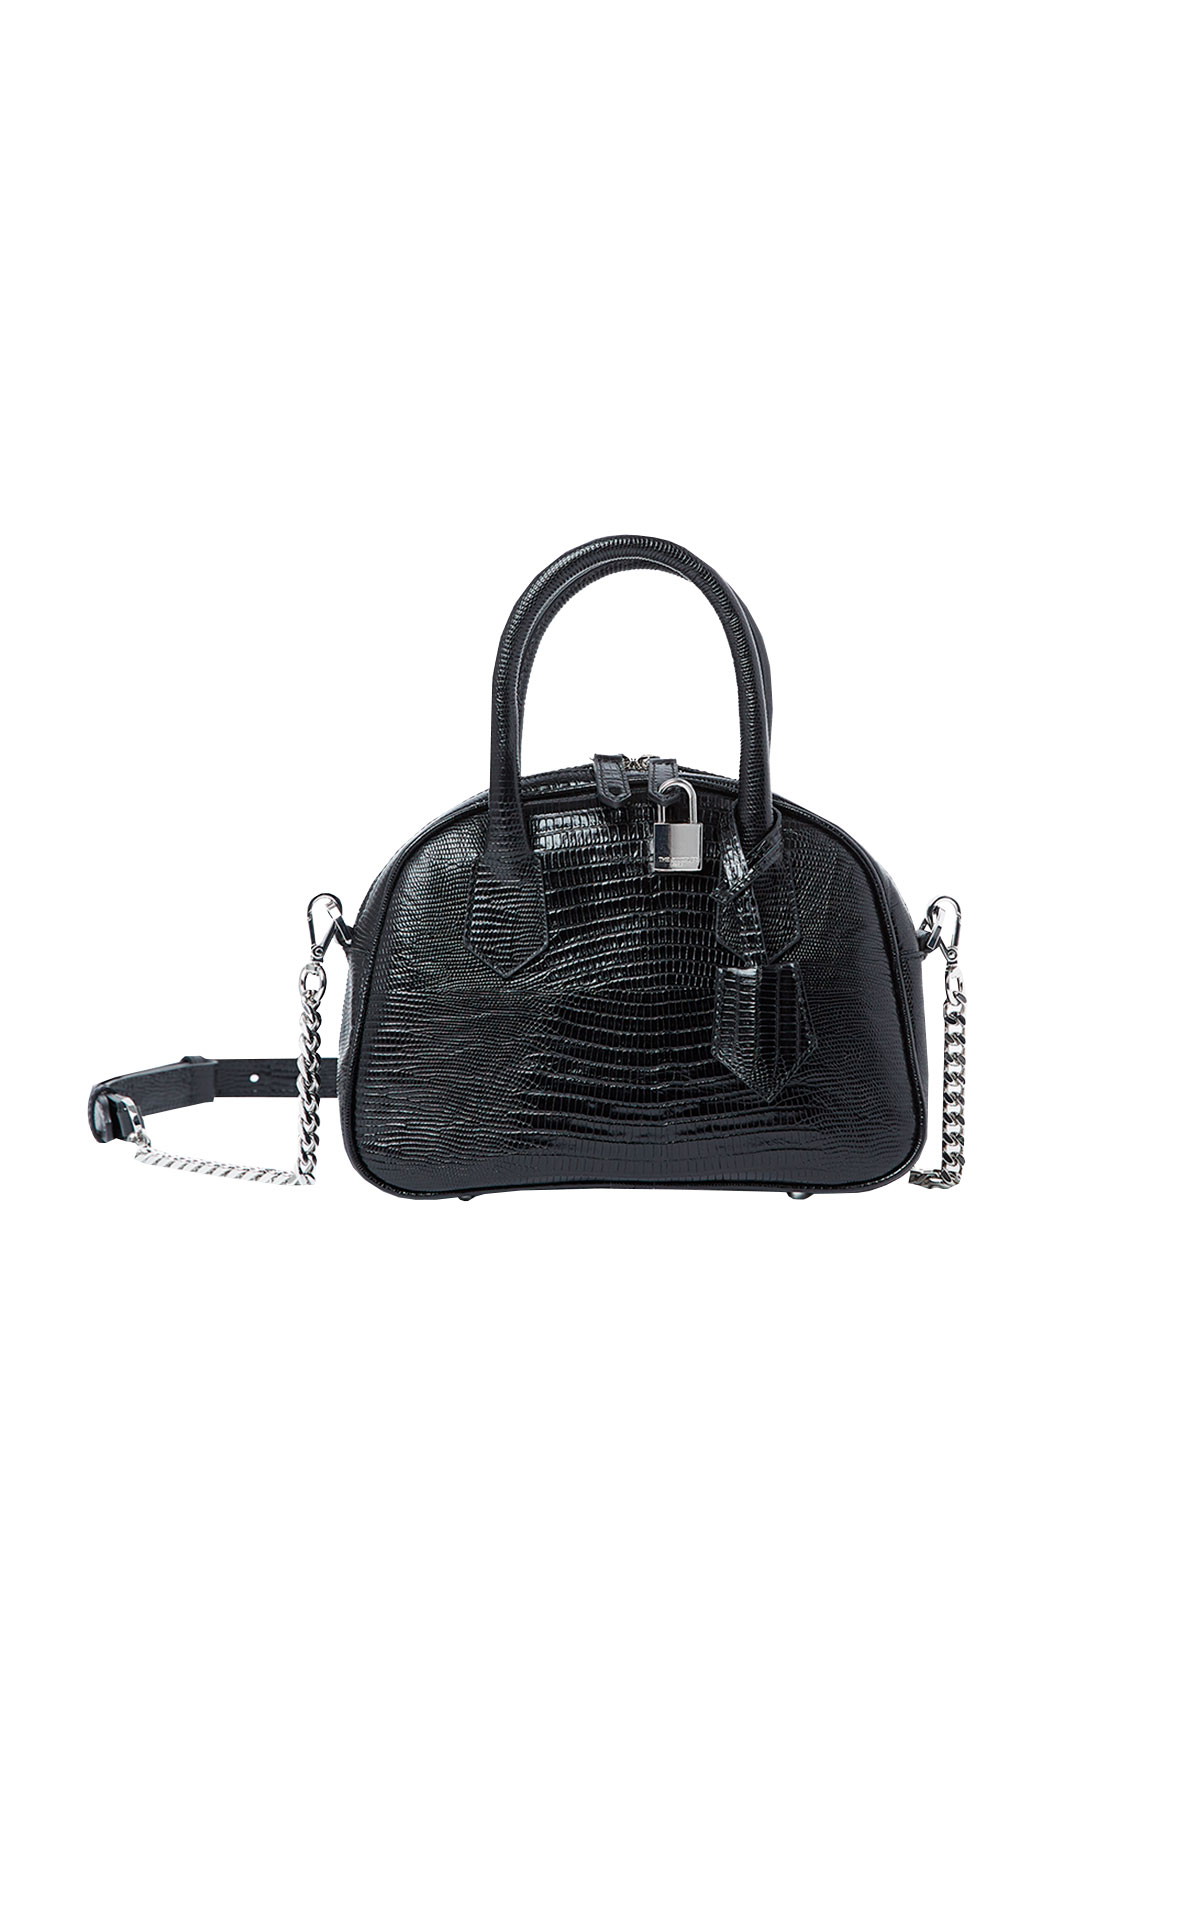 Black Irina bag The Kooples